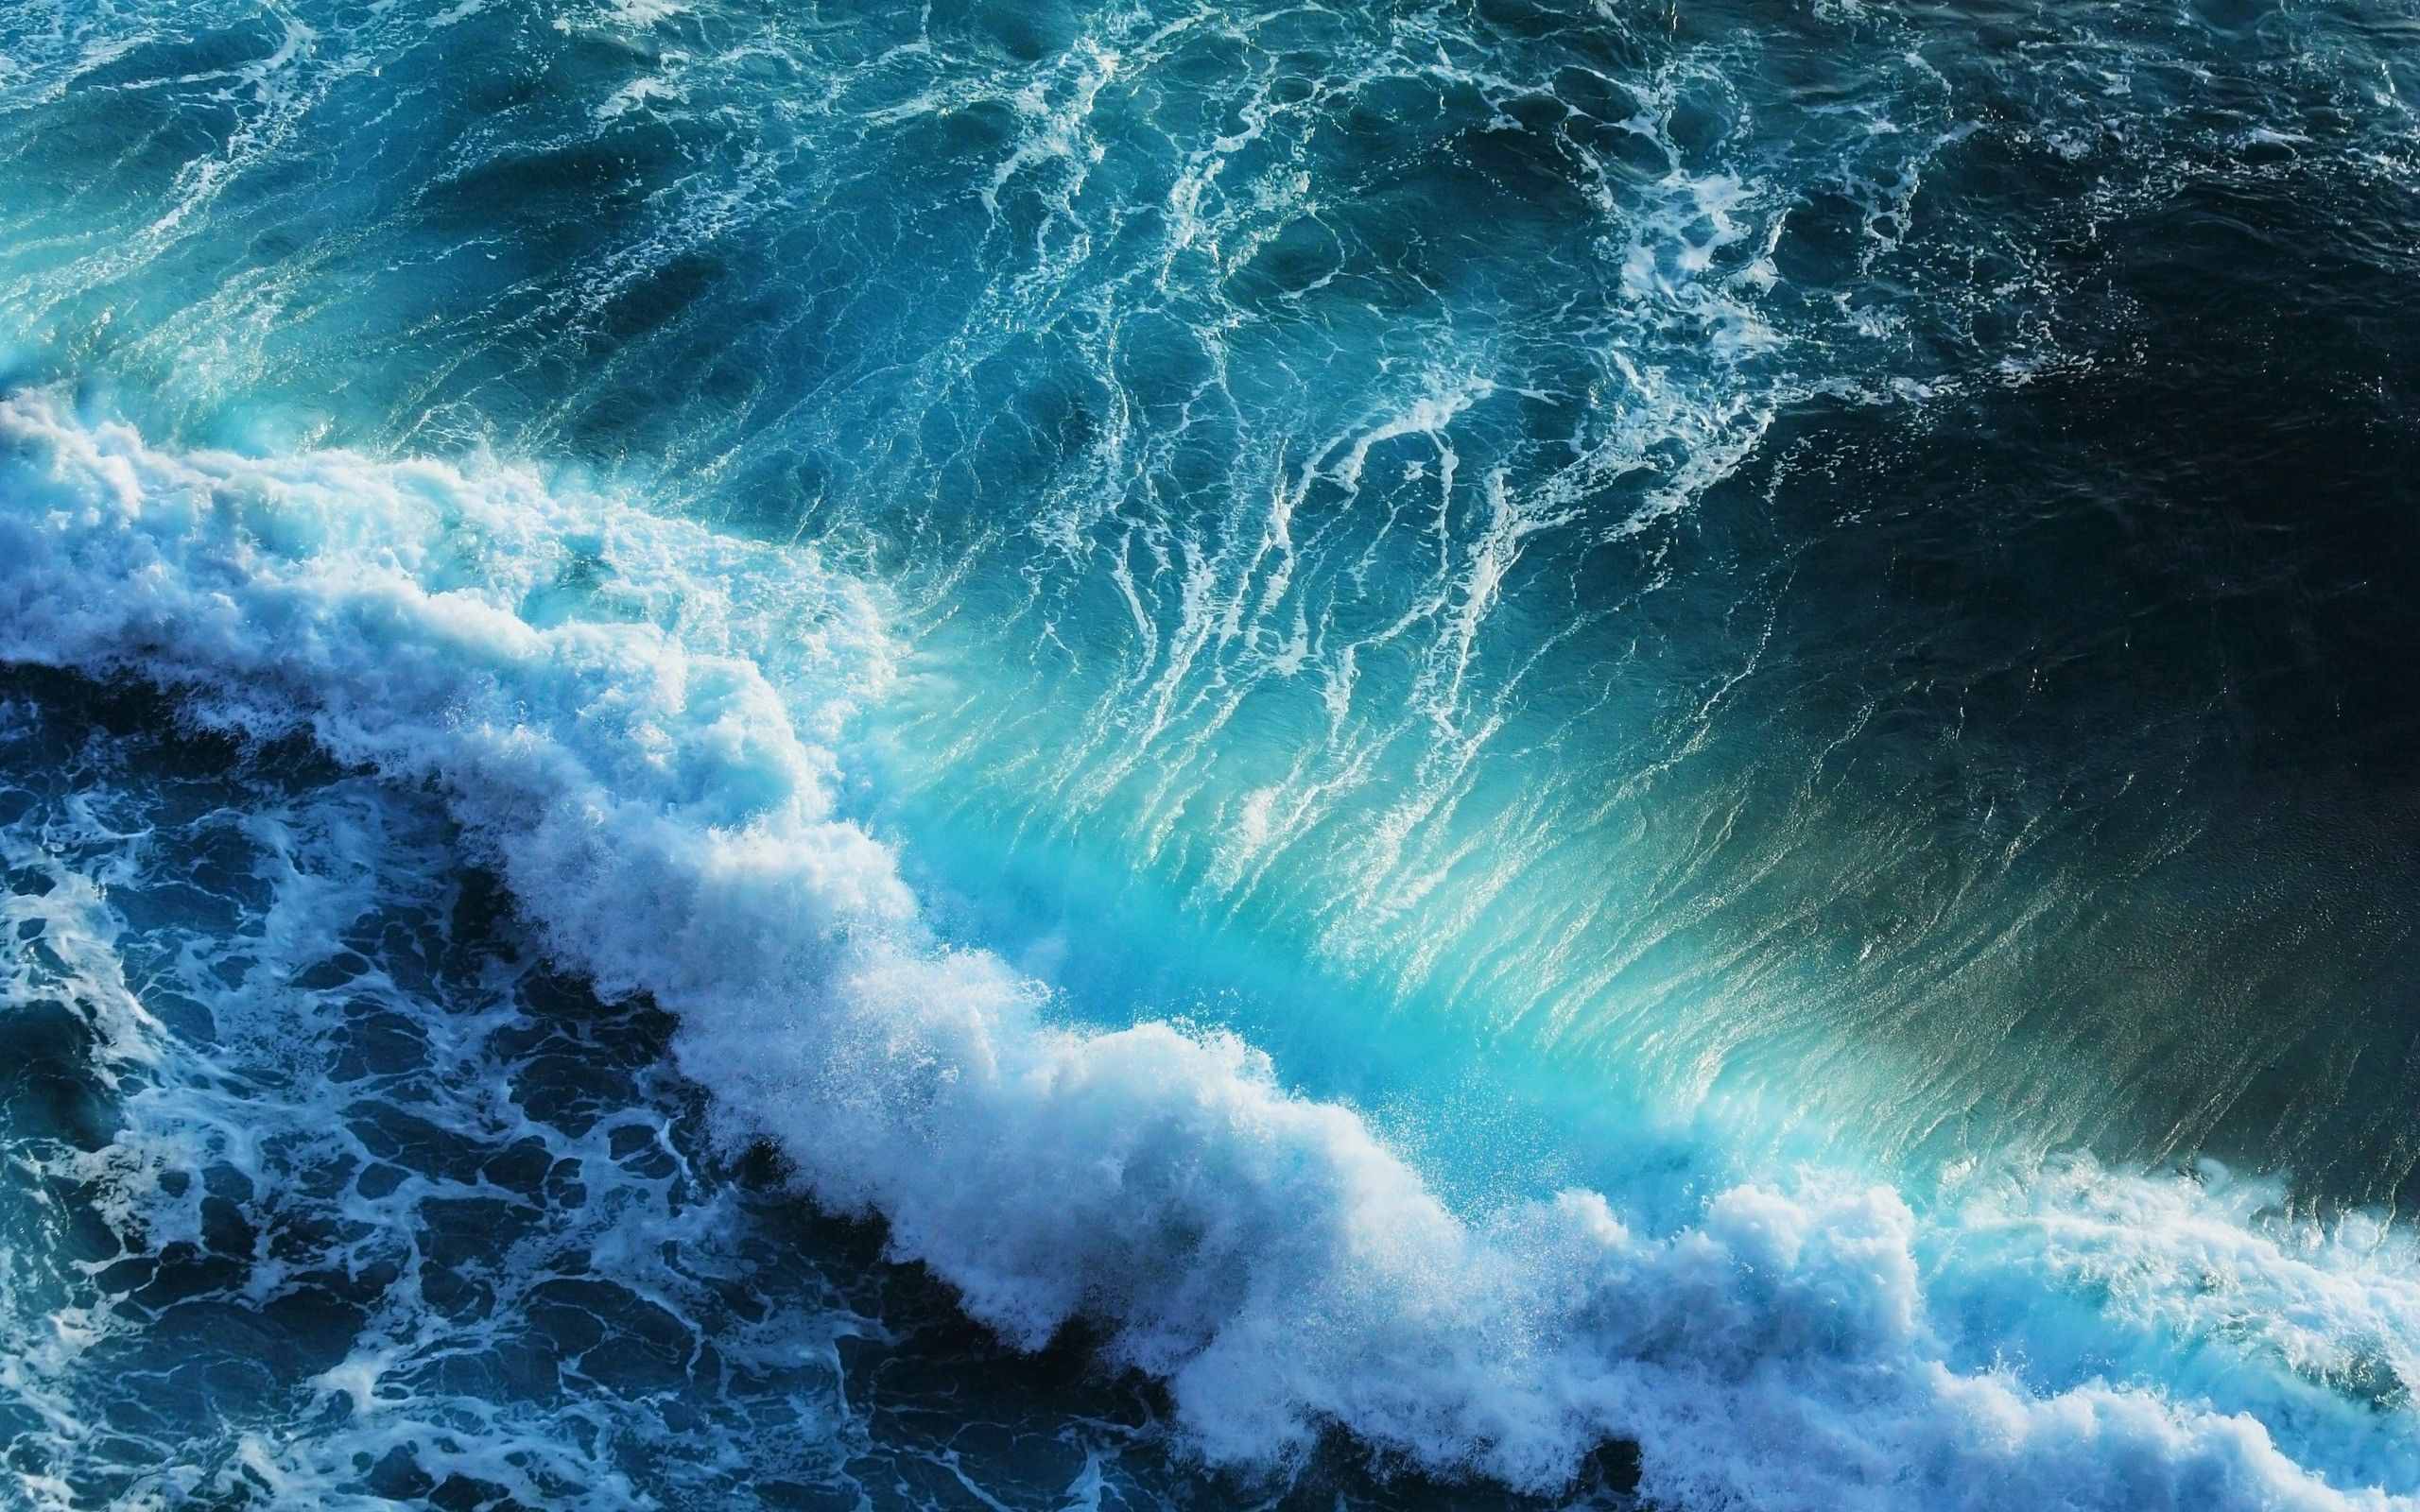 The Ocean Waves Wallpaper Ocean Wallpaper Ocean Backgrounds